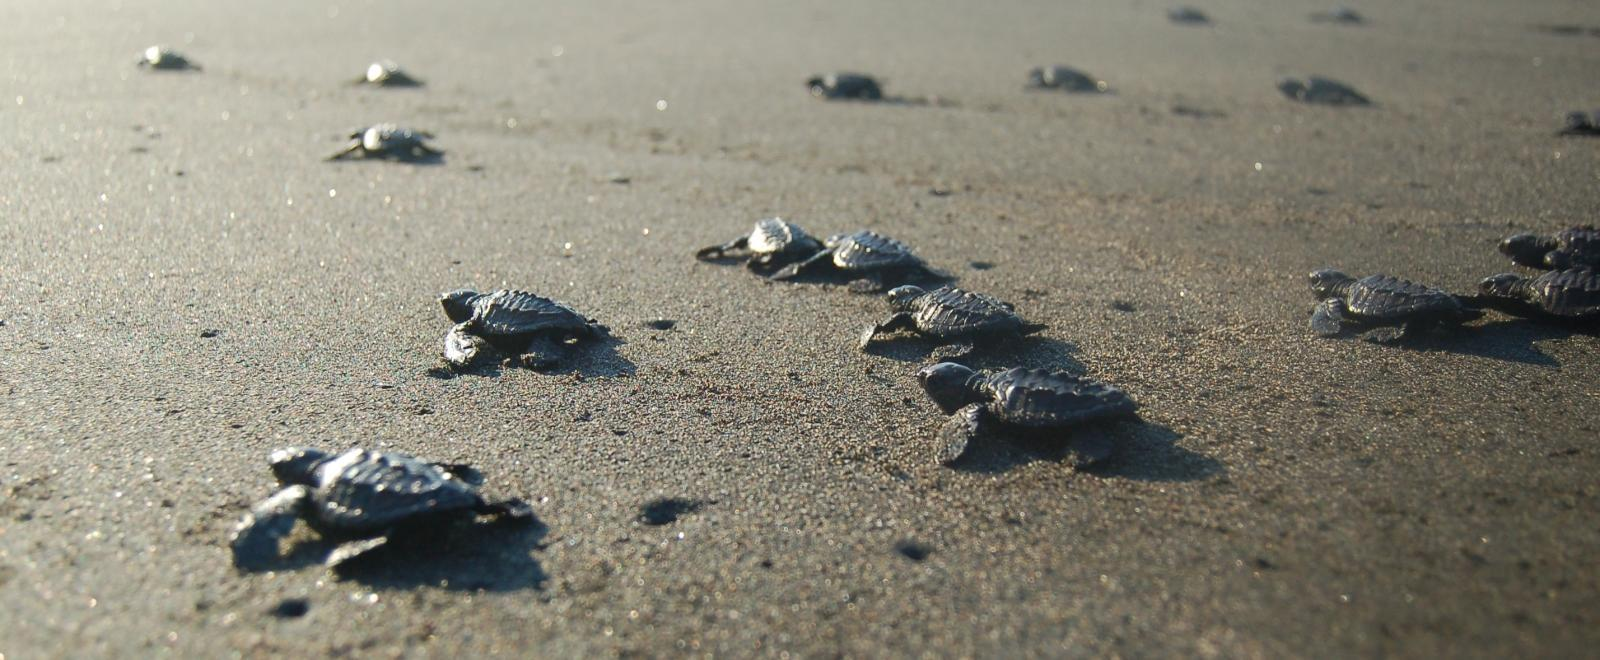 New-born turtles make their way to the ocean on a black sand beach after being released by a group of Conservation volunteers.